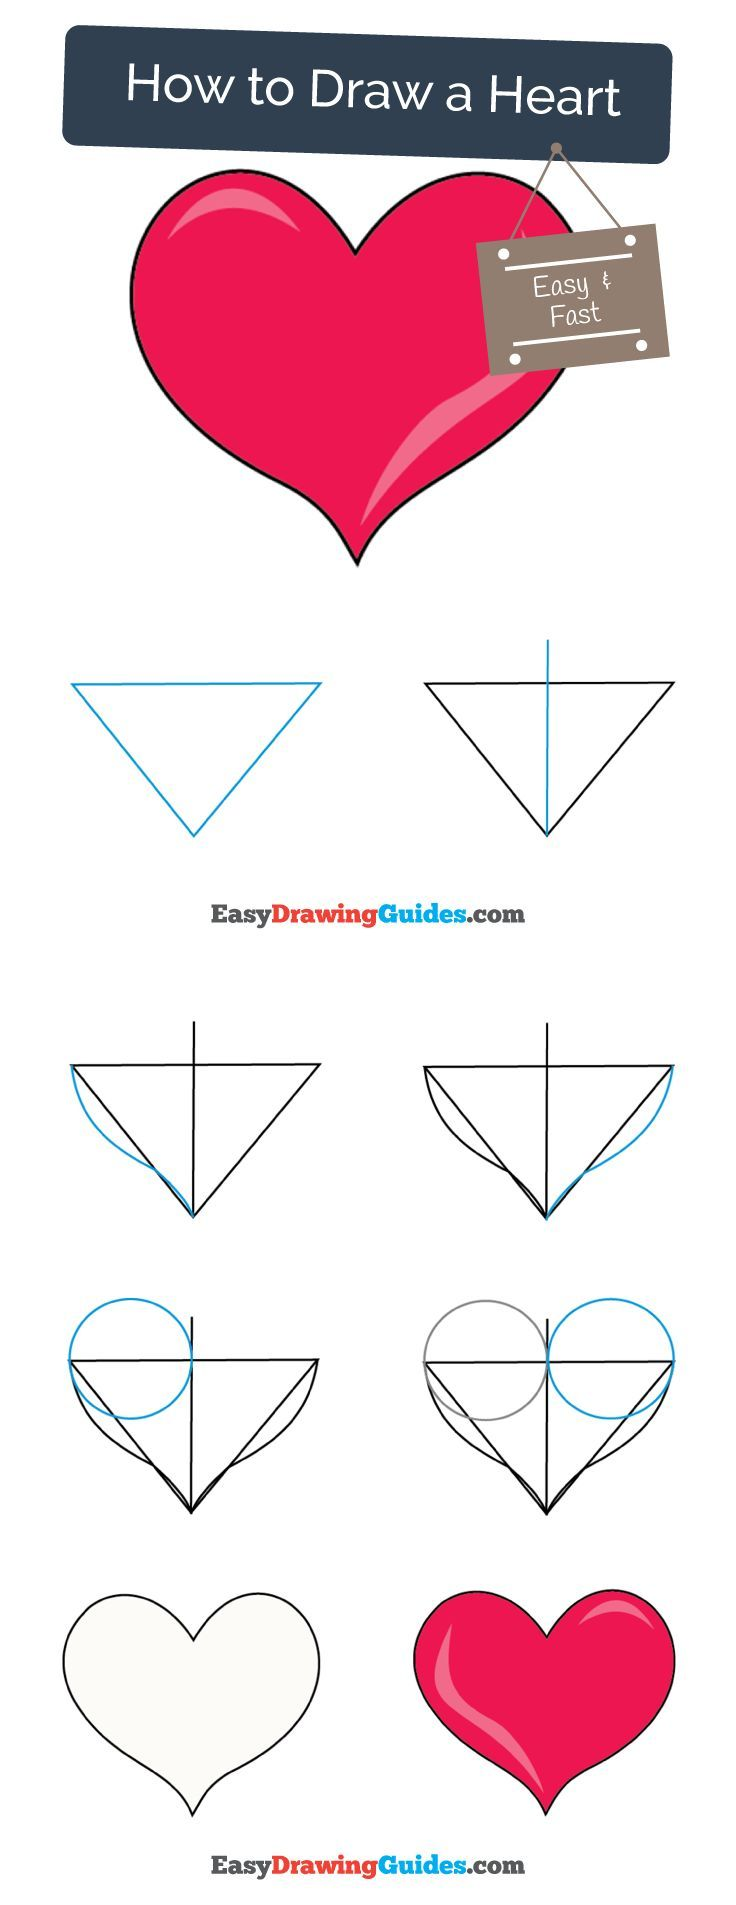 736x1905 How To Draw A Heart Easy And Simple Guide Drawings, Doodle